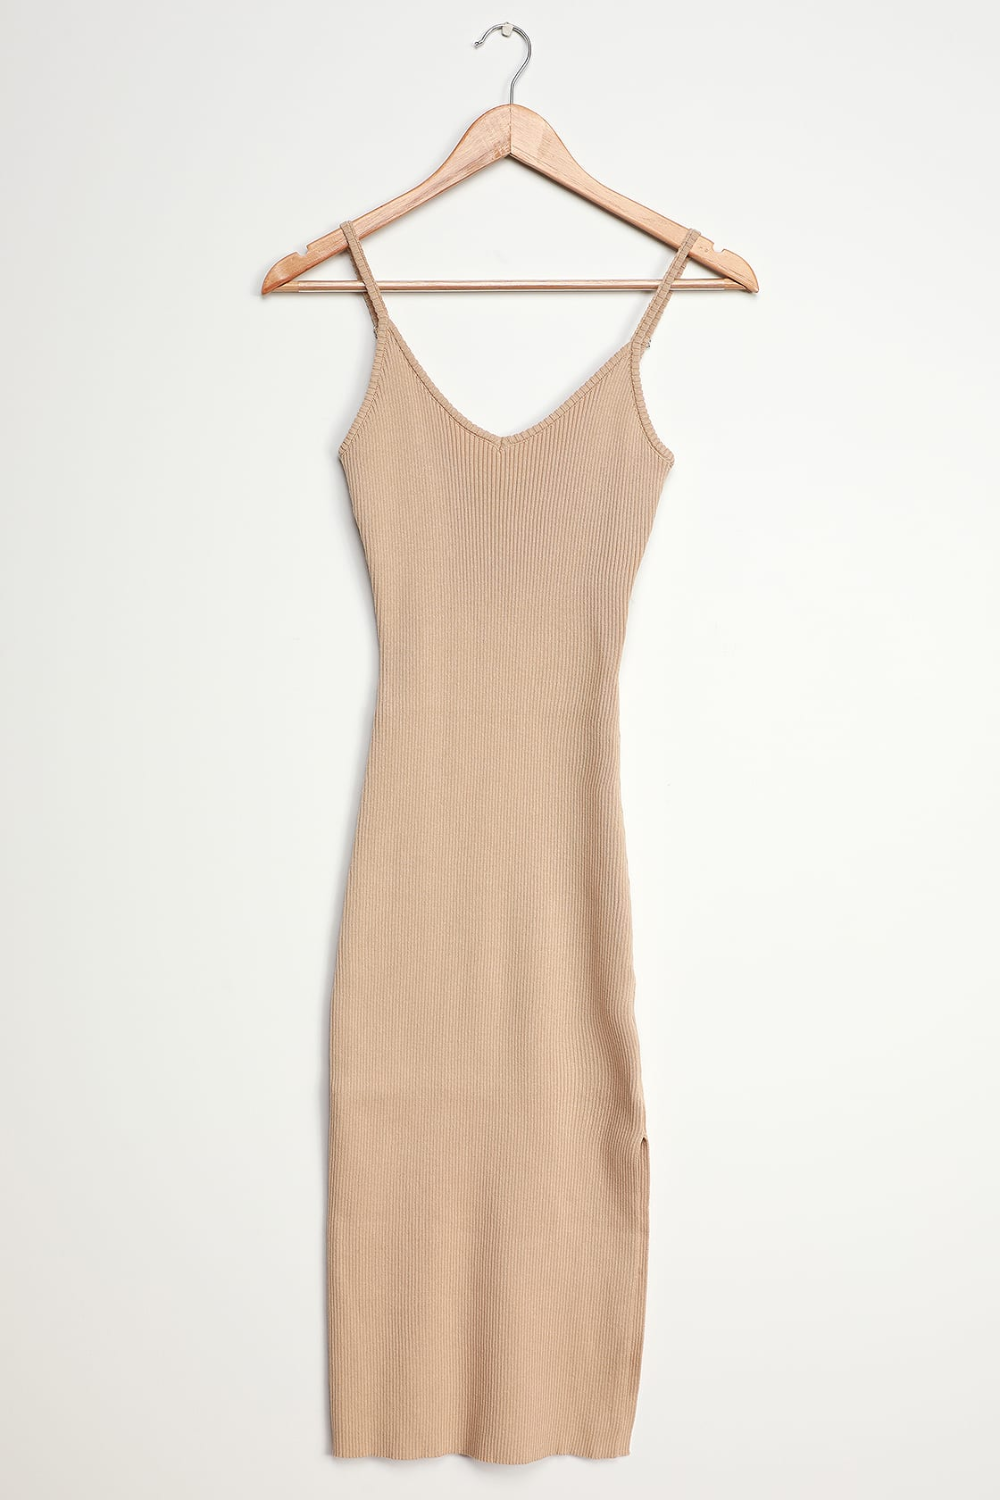 The Long Awaited Tan Ribbed Bodycon Midi Dress Is Finally Here To Spice Up Your Look Soft Medium Weight Ribbed Kni Midi Dress Bodycon Midi Dress Bodycon Midi [ 1500 x 1000 Pixel ]